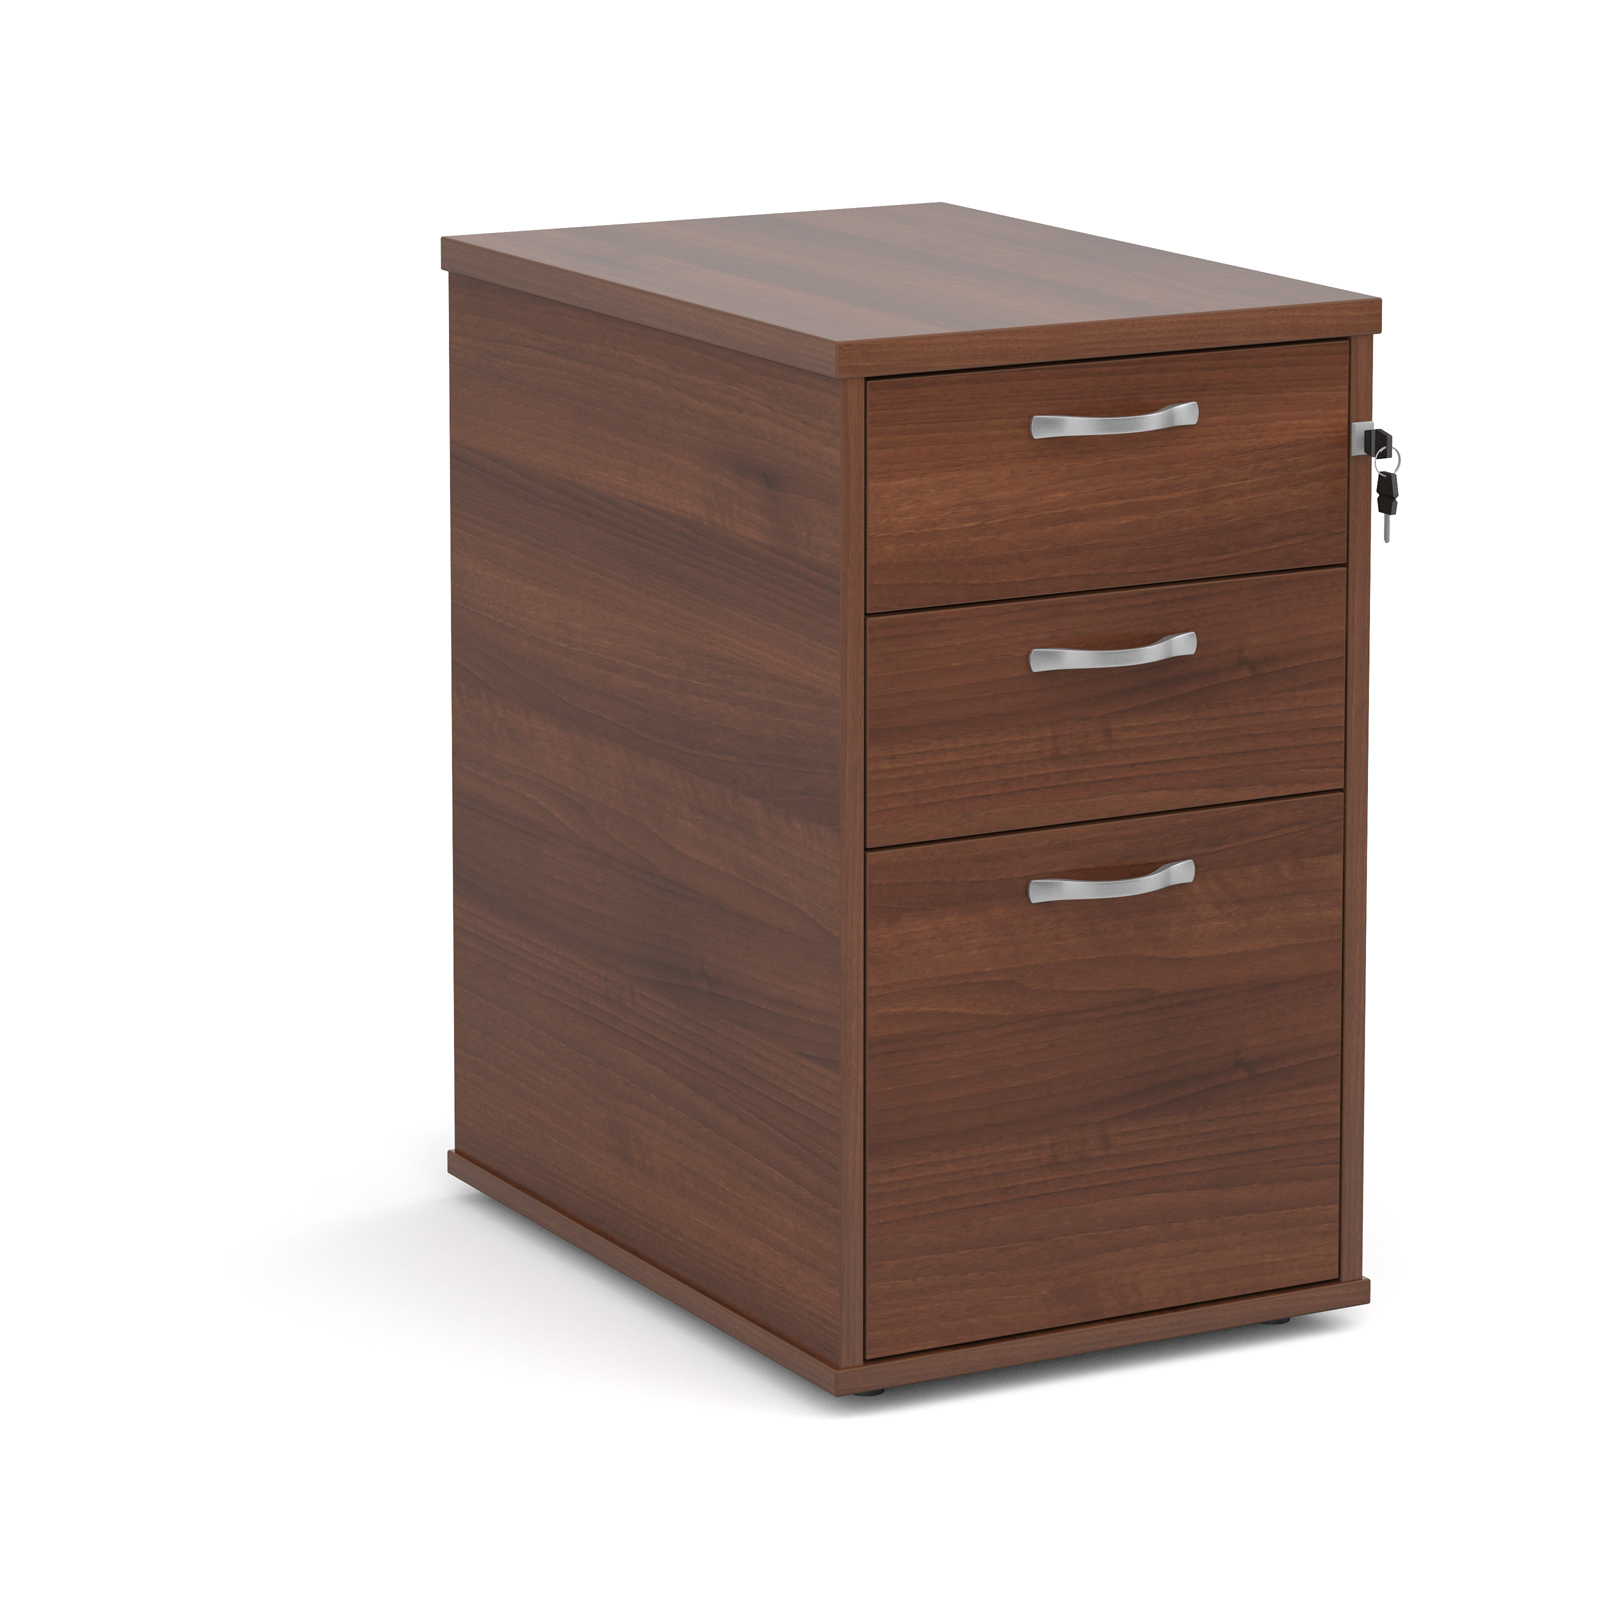 600mm Desk High 3 Drawer Pedestal in walnut